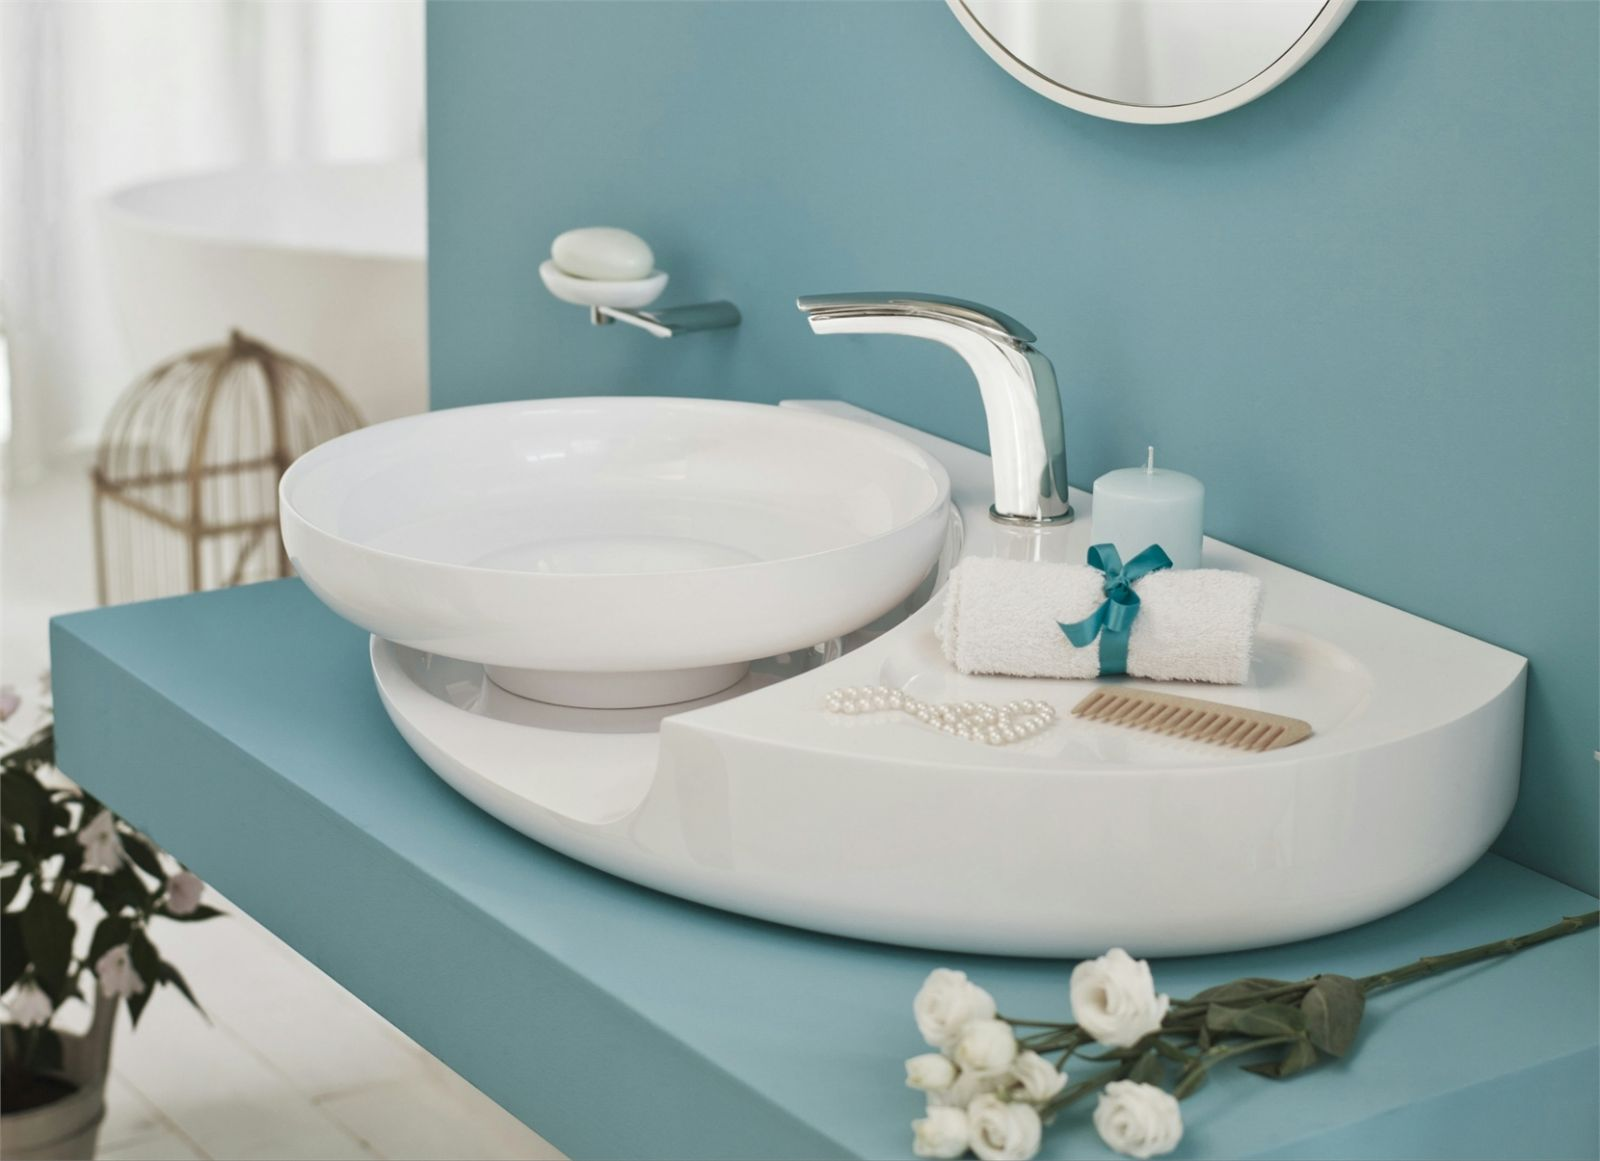 Italian bathroom fittings -  Quality And Precision In The World Of Italian Bathroom Fittings And You Can Still Find All These Admirable Qualities Today In Our New Range Of Products